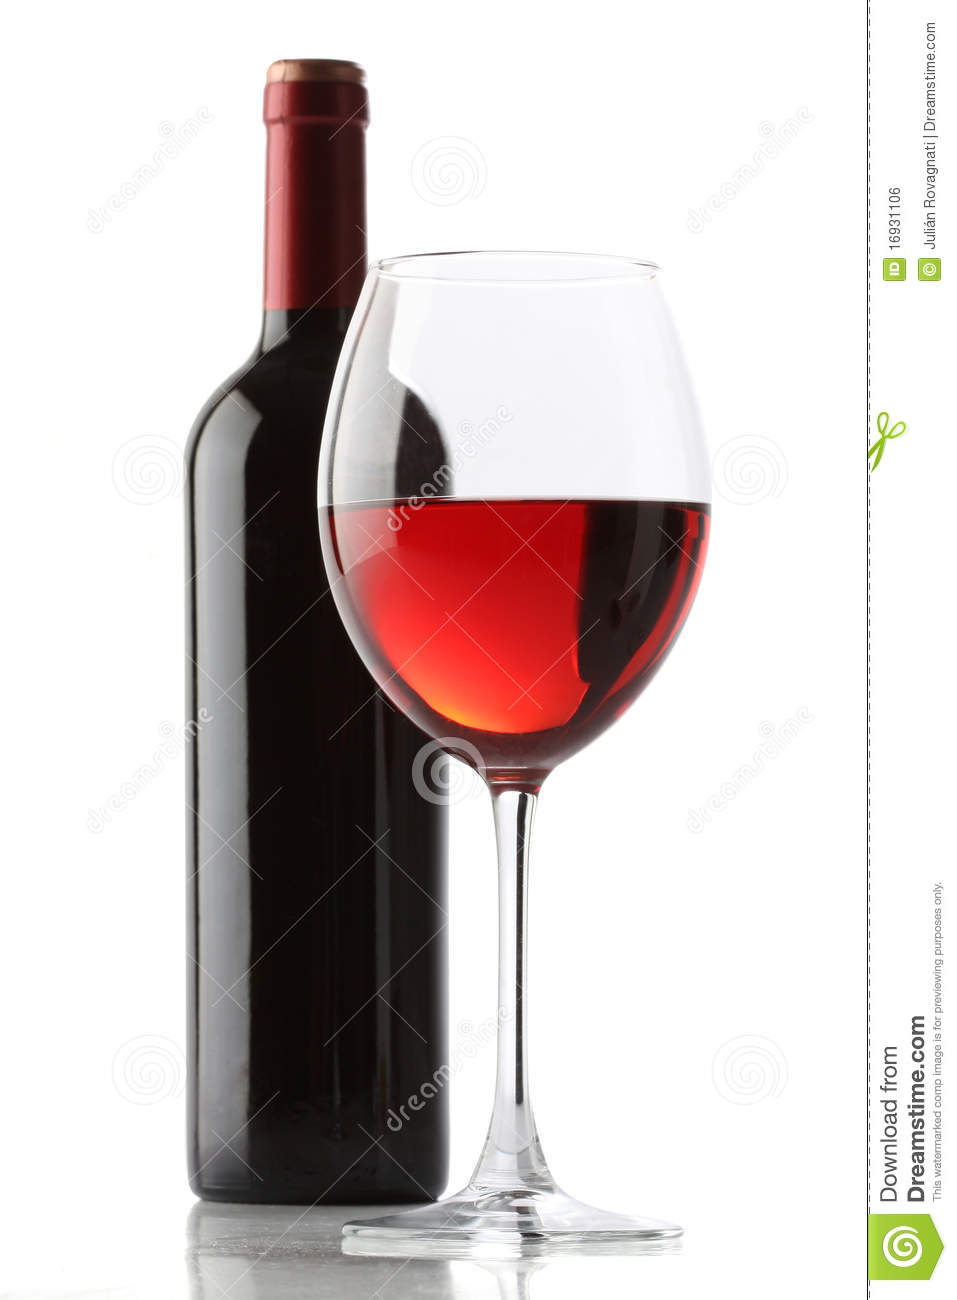 glass of red wine and a bottle bottle red wine